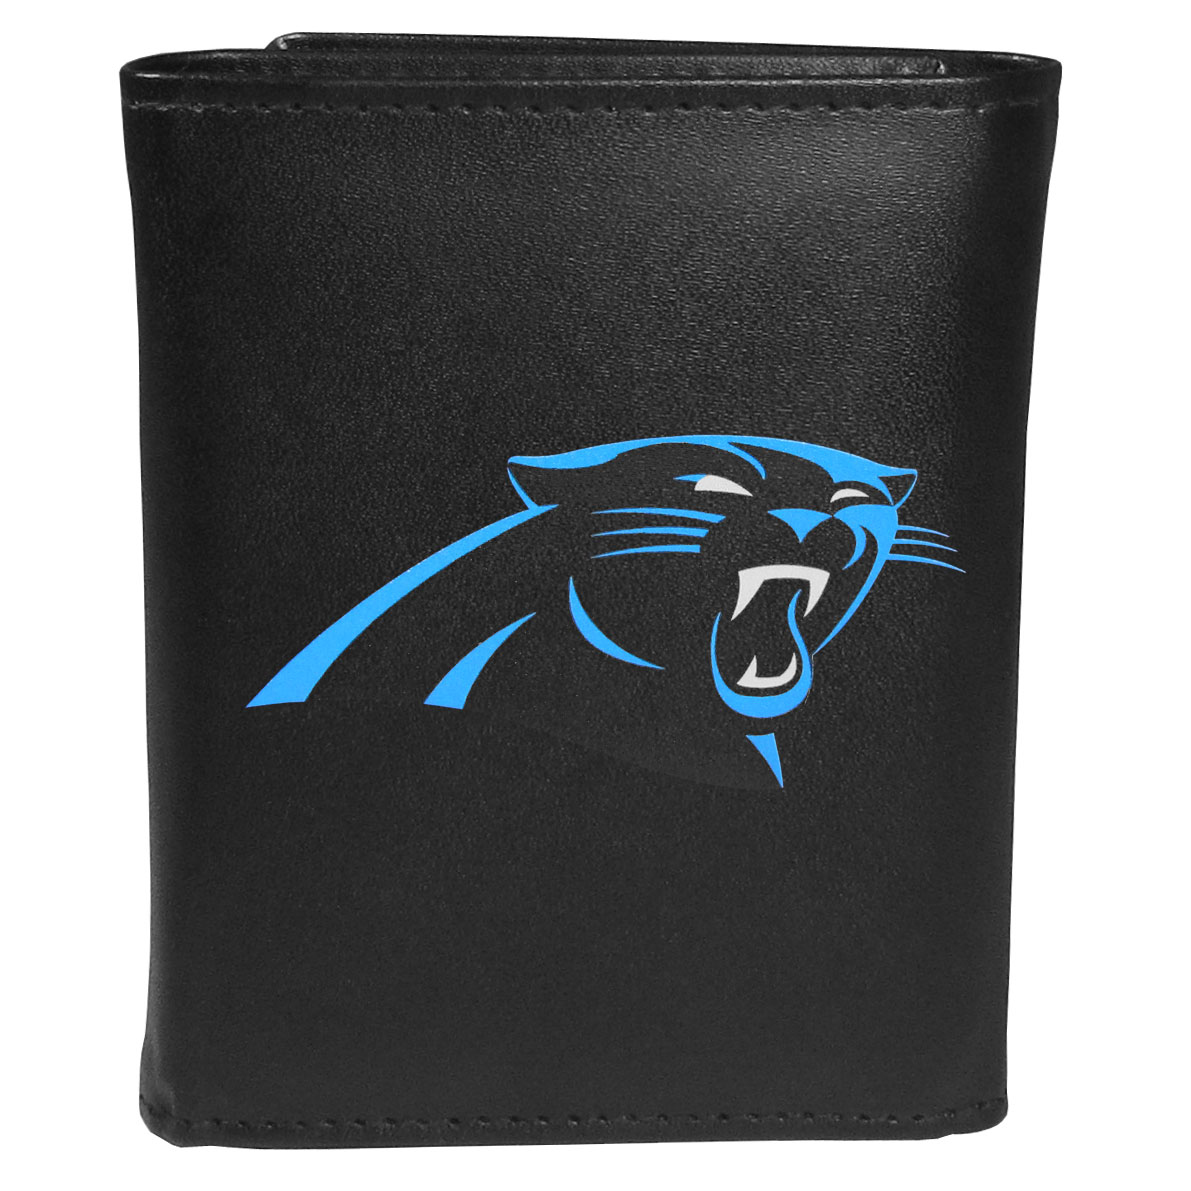 Carolina Panthers Leather Tri-fold Wallet, Large Logo - Our classic fine leather tri-fold wallet is meticulously crafted with genuine leather that will age beautifully so you will have a quality wallet for years to come. This is fan apparel at its finest. The wallet is packed with organizational  features; lots of credit card slots, large billfold pocket, and a window ID slot. The front of the wallet features an extra large Carolina Panthers printed logo.